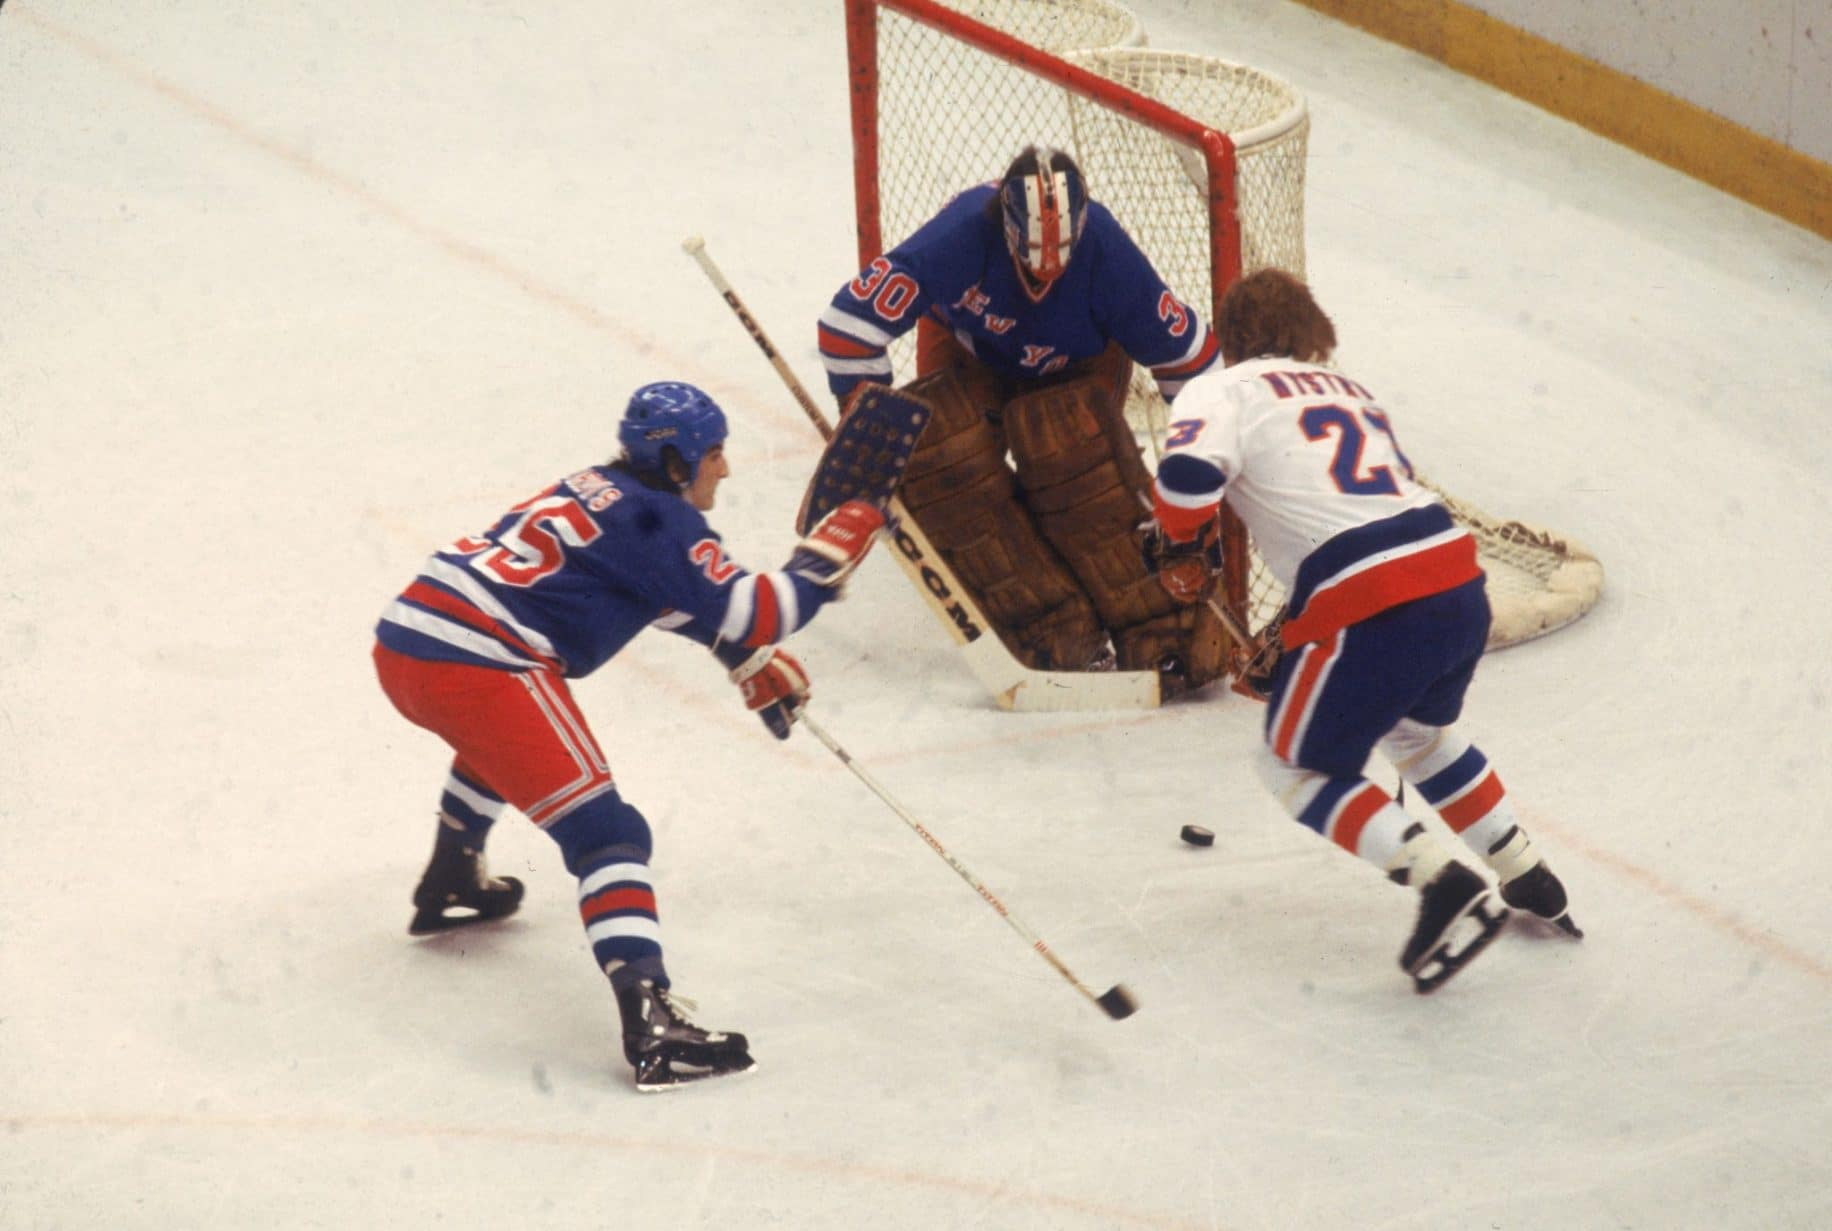 Gettyimages-72279012-new-york-rangers-vs-new-york-islanders-rivalry-6-great-moments